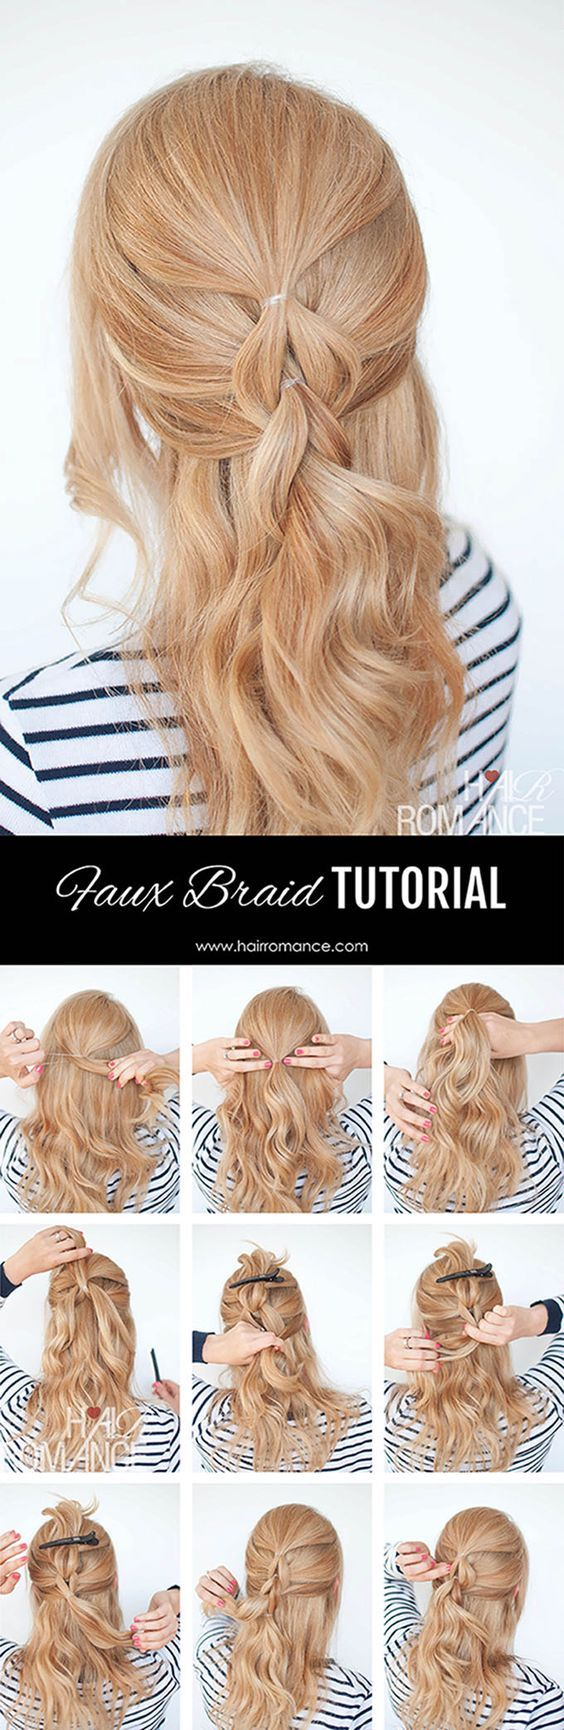 The no-braid braid – 5 pull-through braid tutorials: